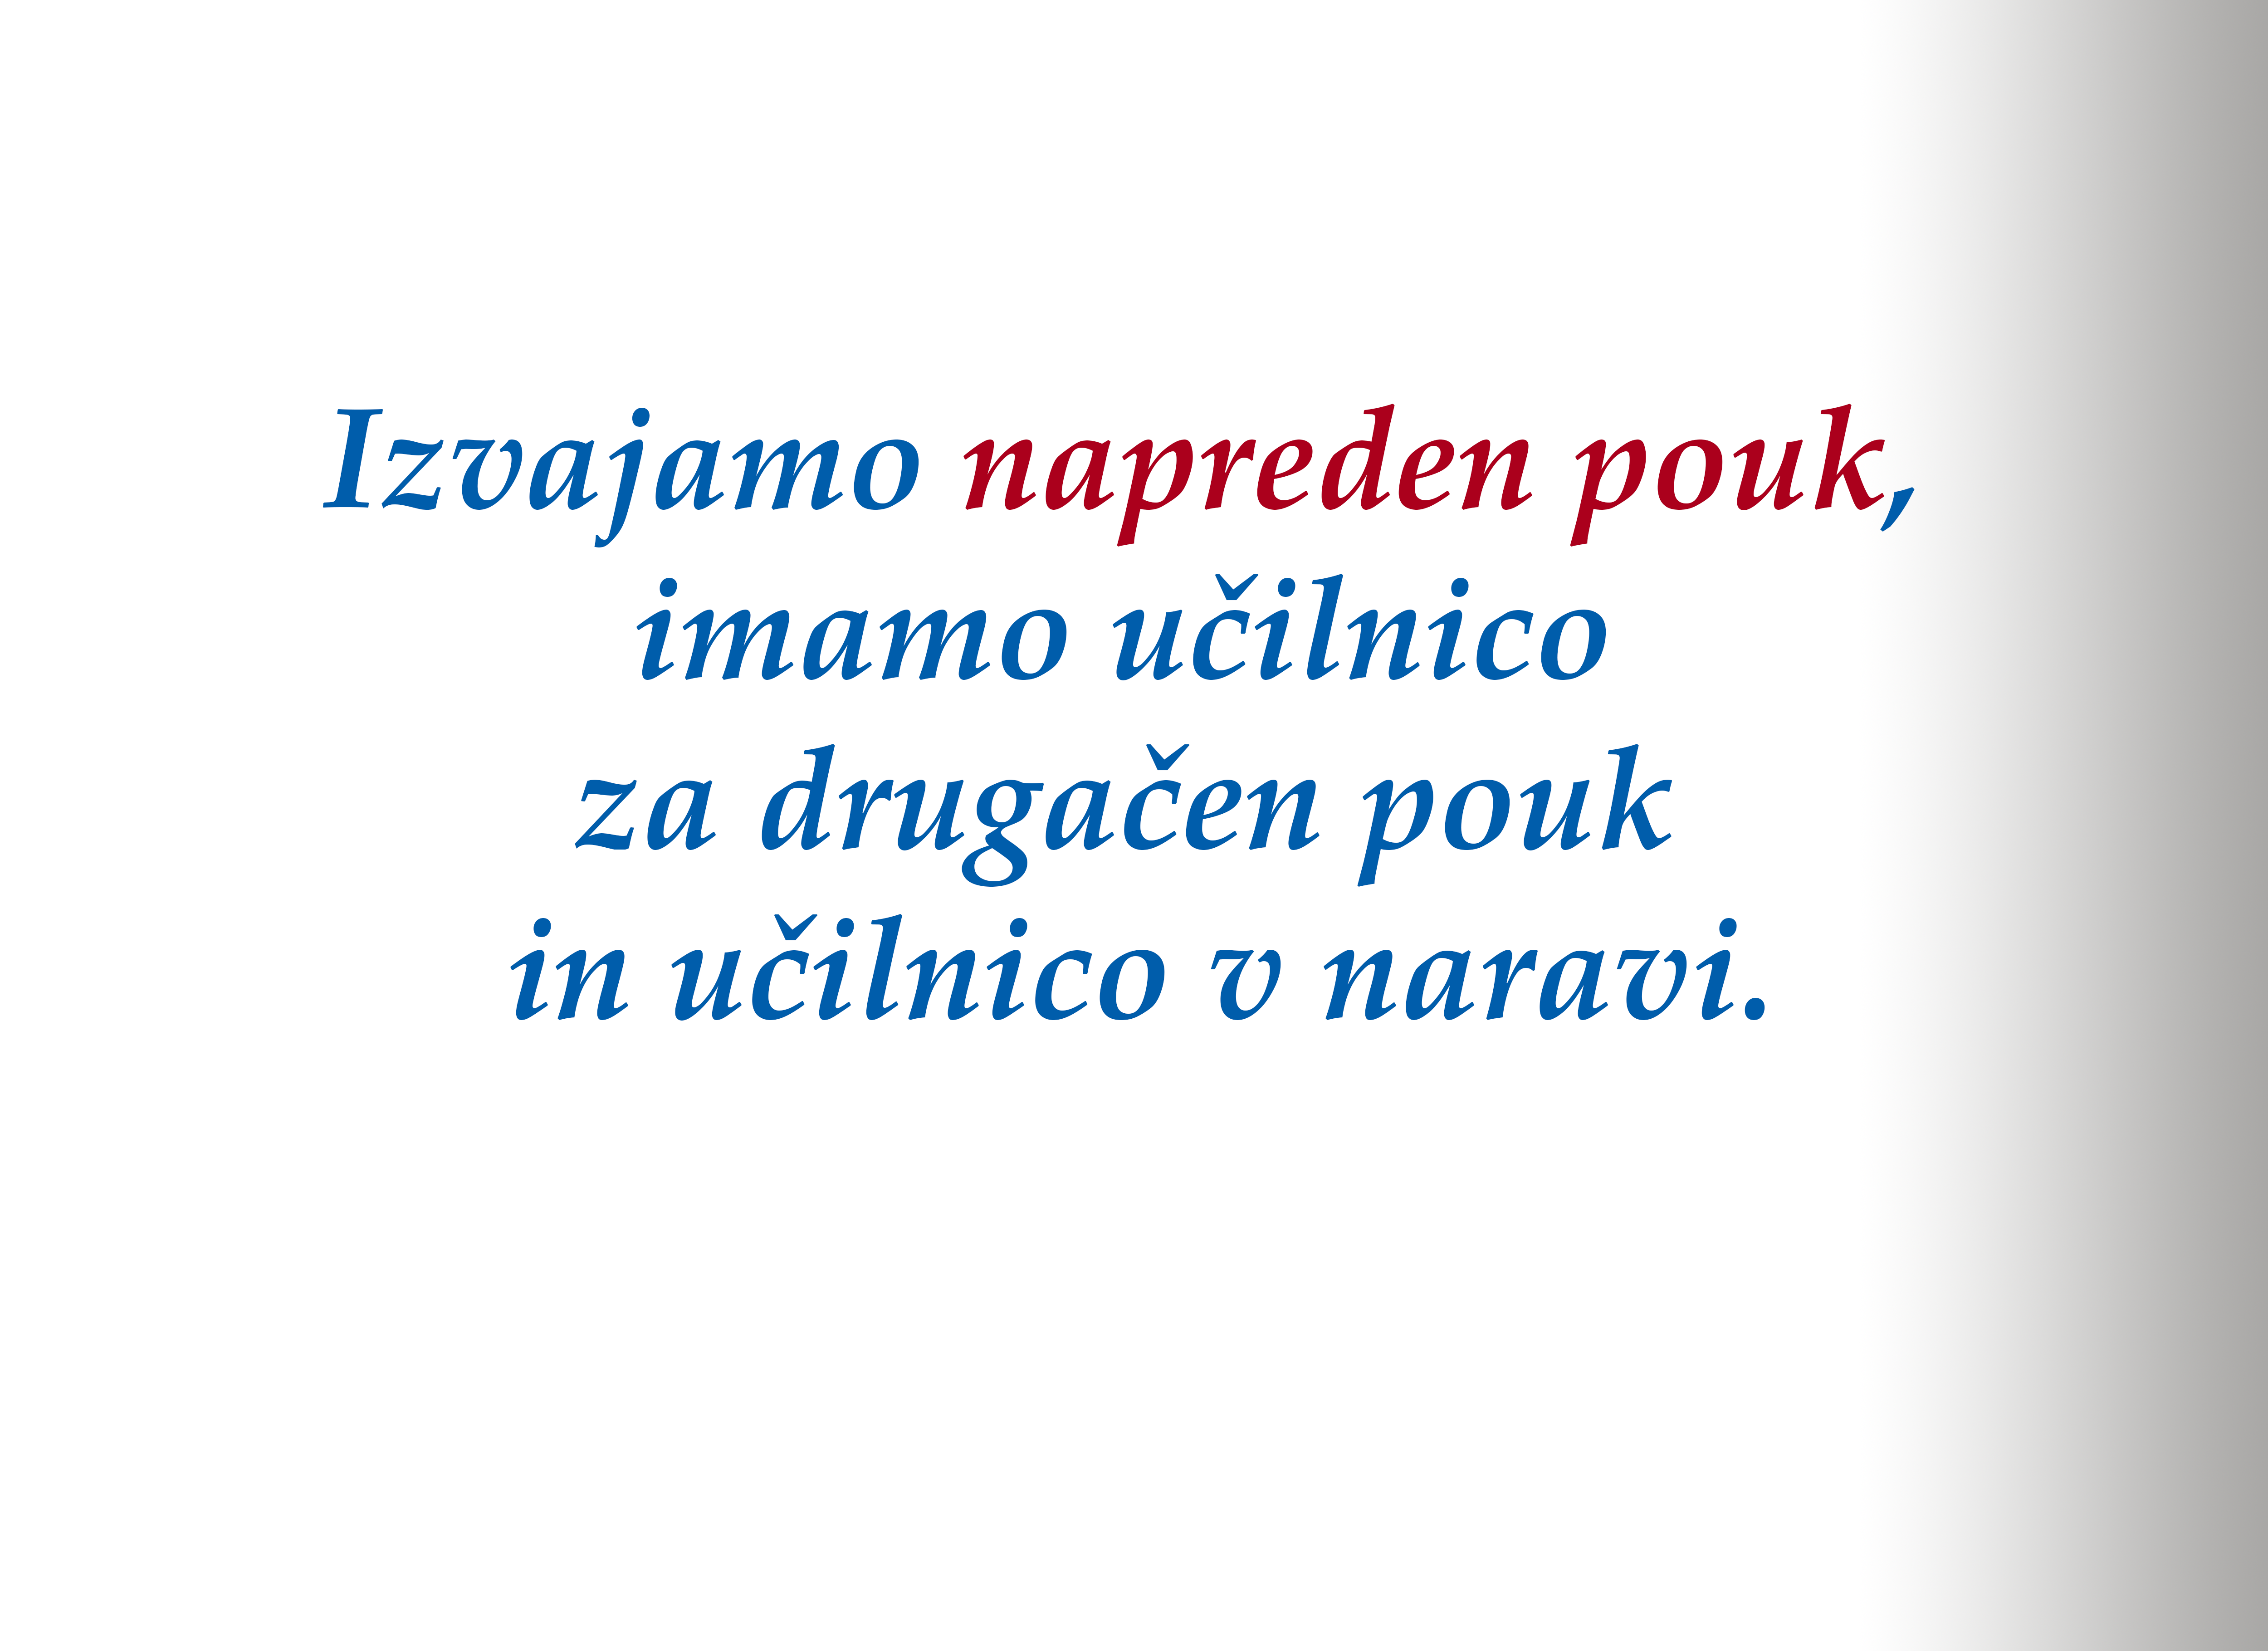 http://www.esnm.si/wp-content/uploads/2020/02/04_tekst.png